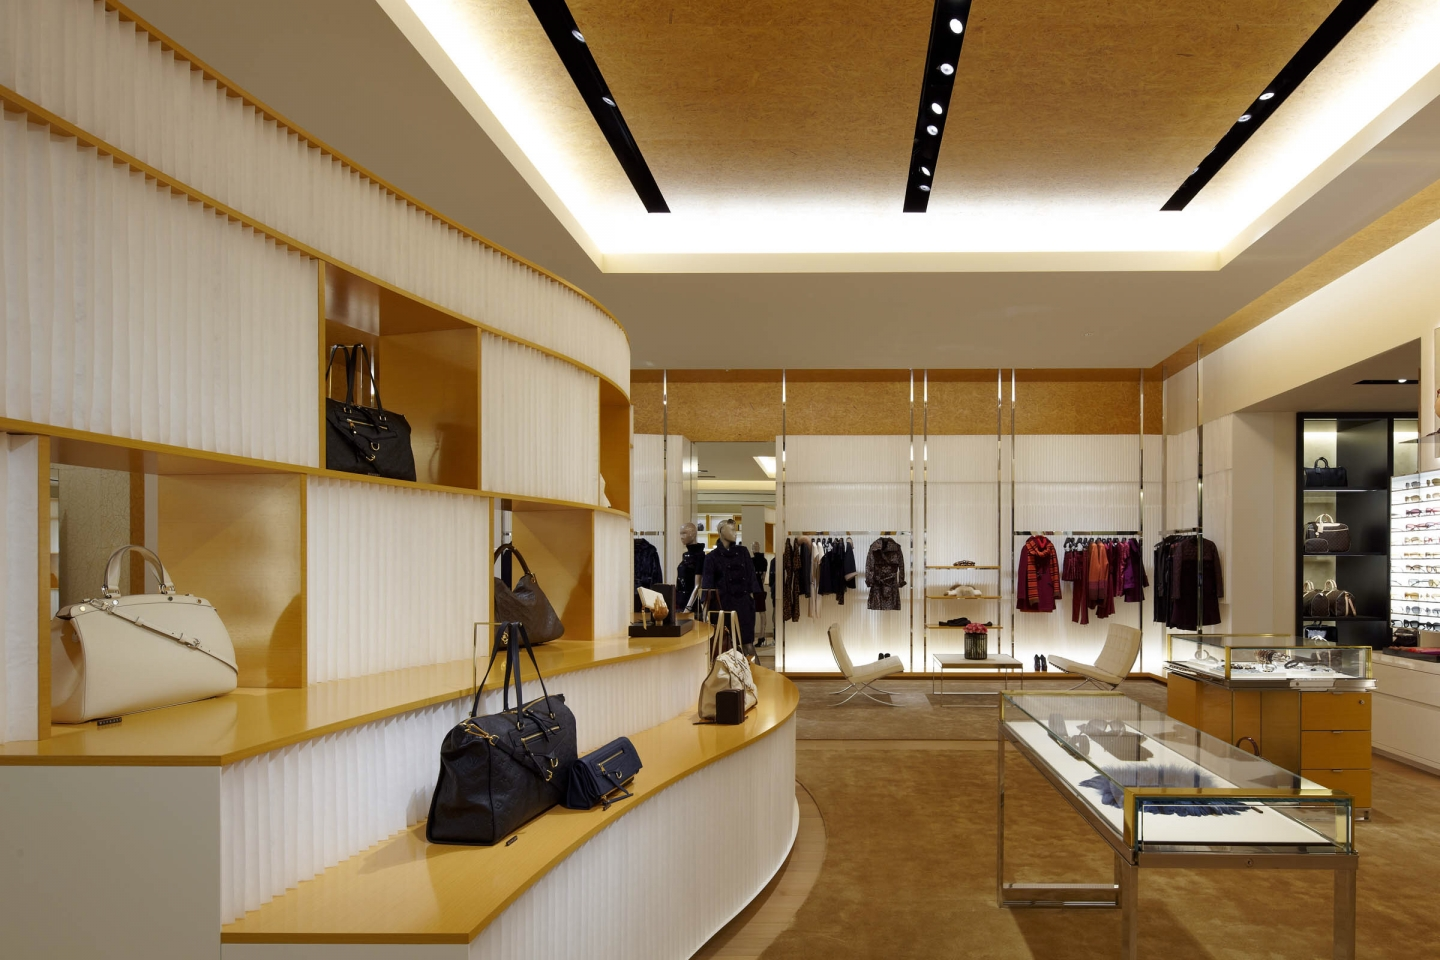 molo white textile softblocks and cloud softlight at Louis Vuitton in Osaka, Japan